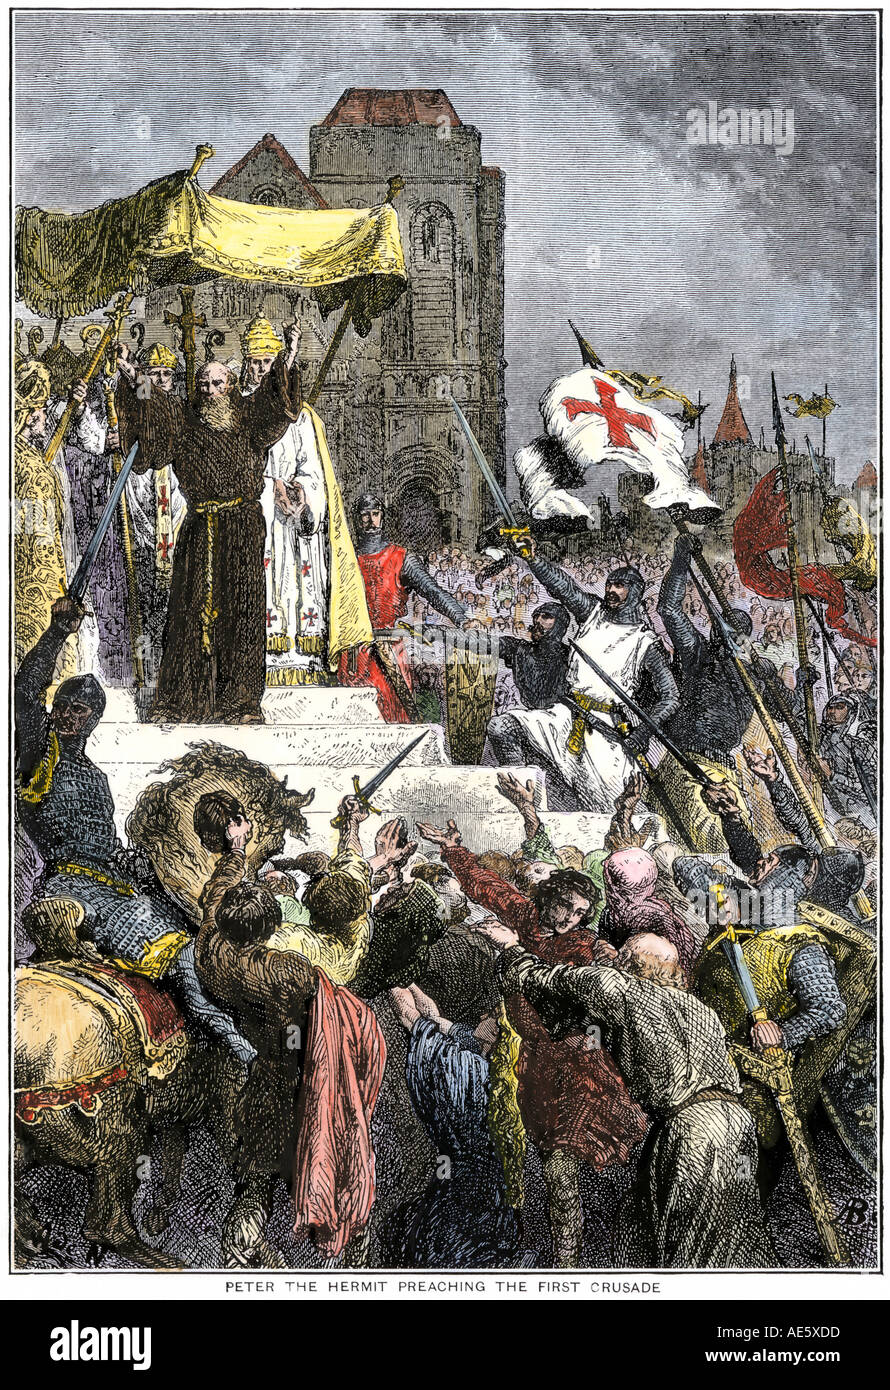 Peter the Hermit preaching the First Crusade before Pope Urban II 1095. Hand-colored woodcut - Stock Image